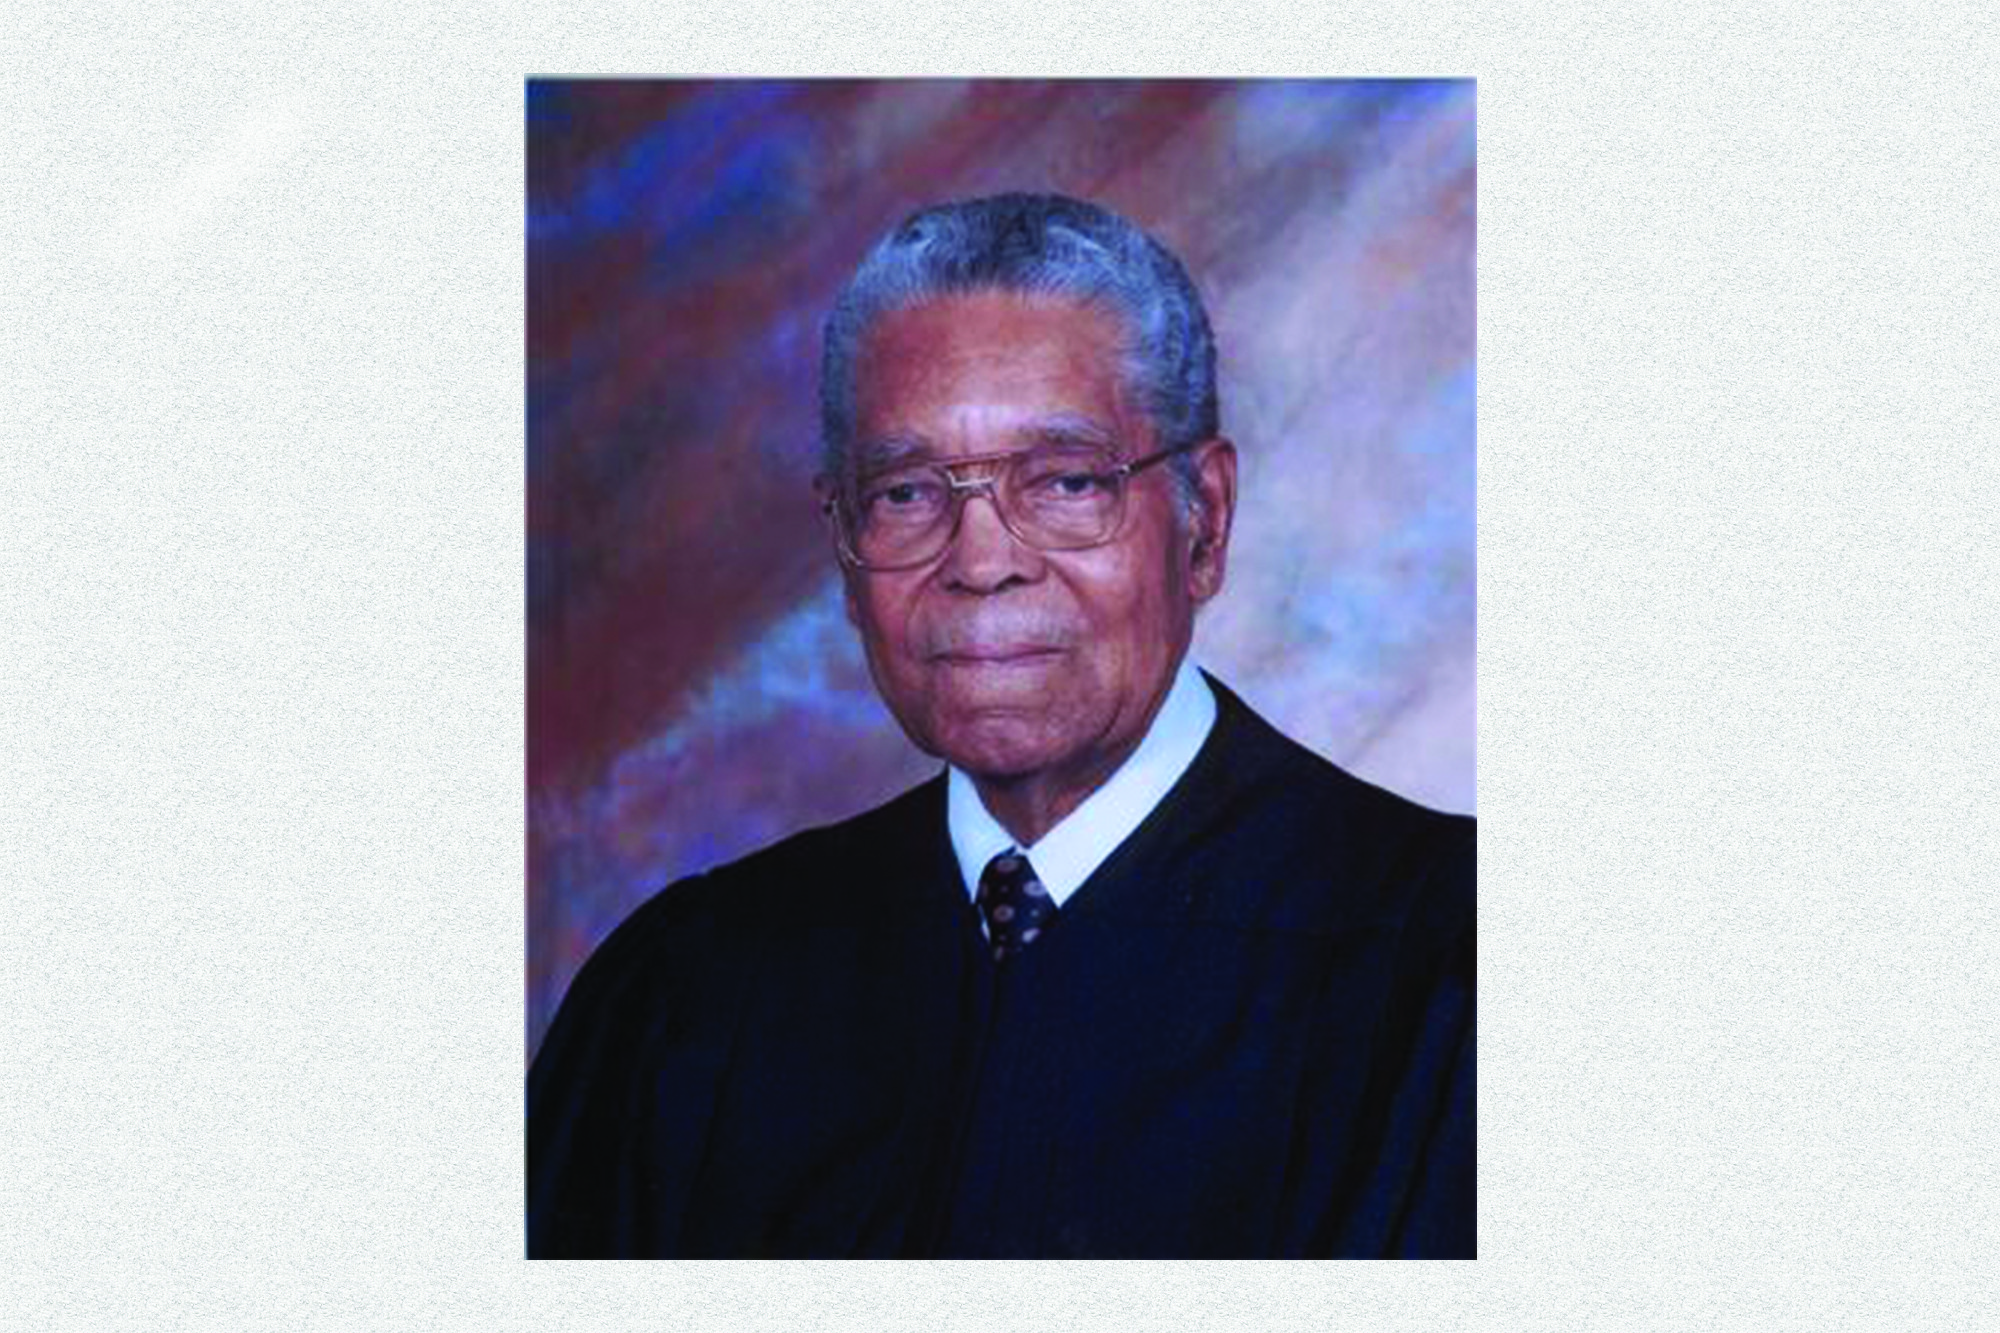 Judge Perry